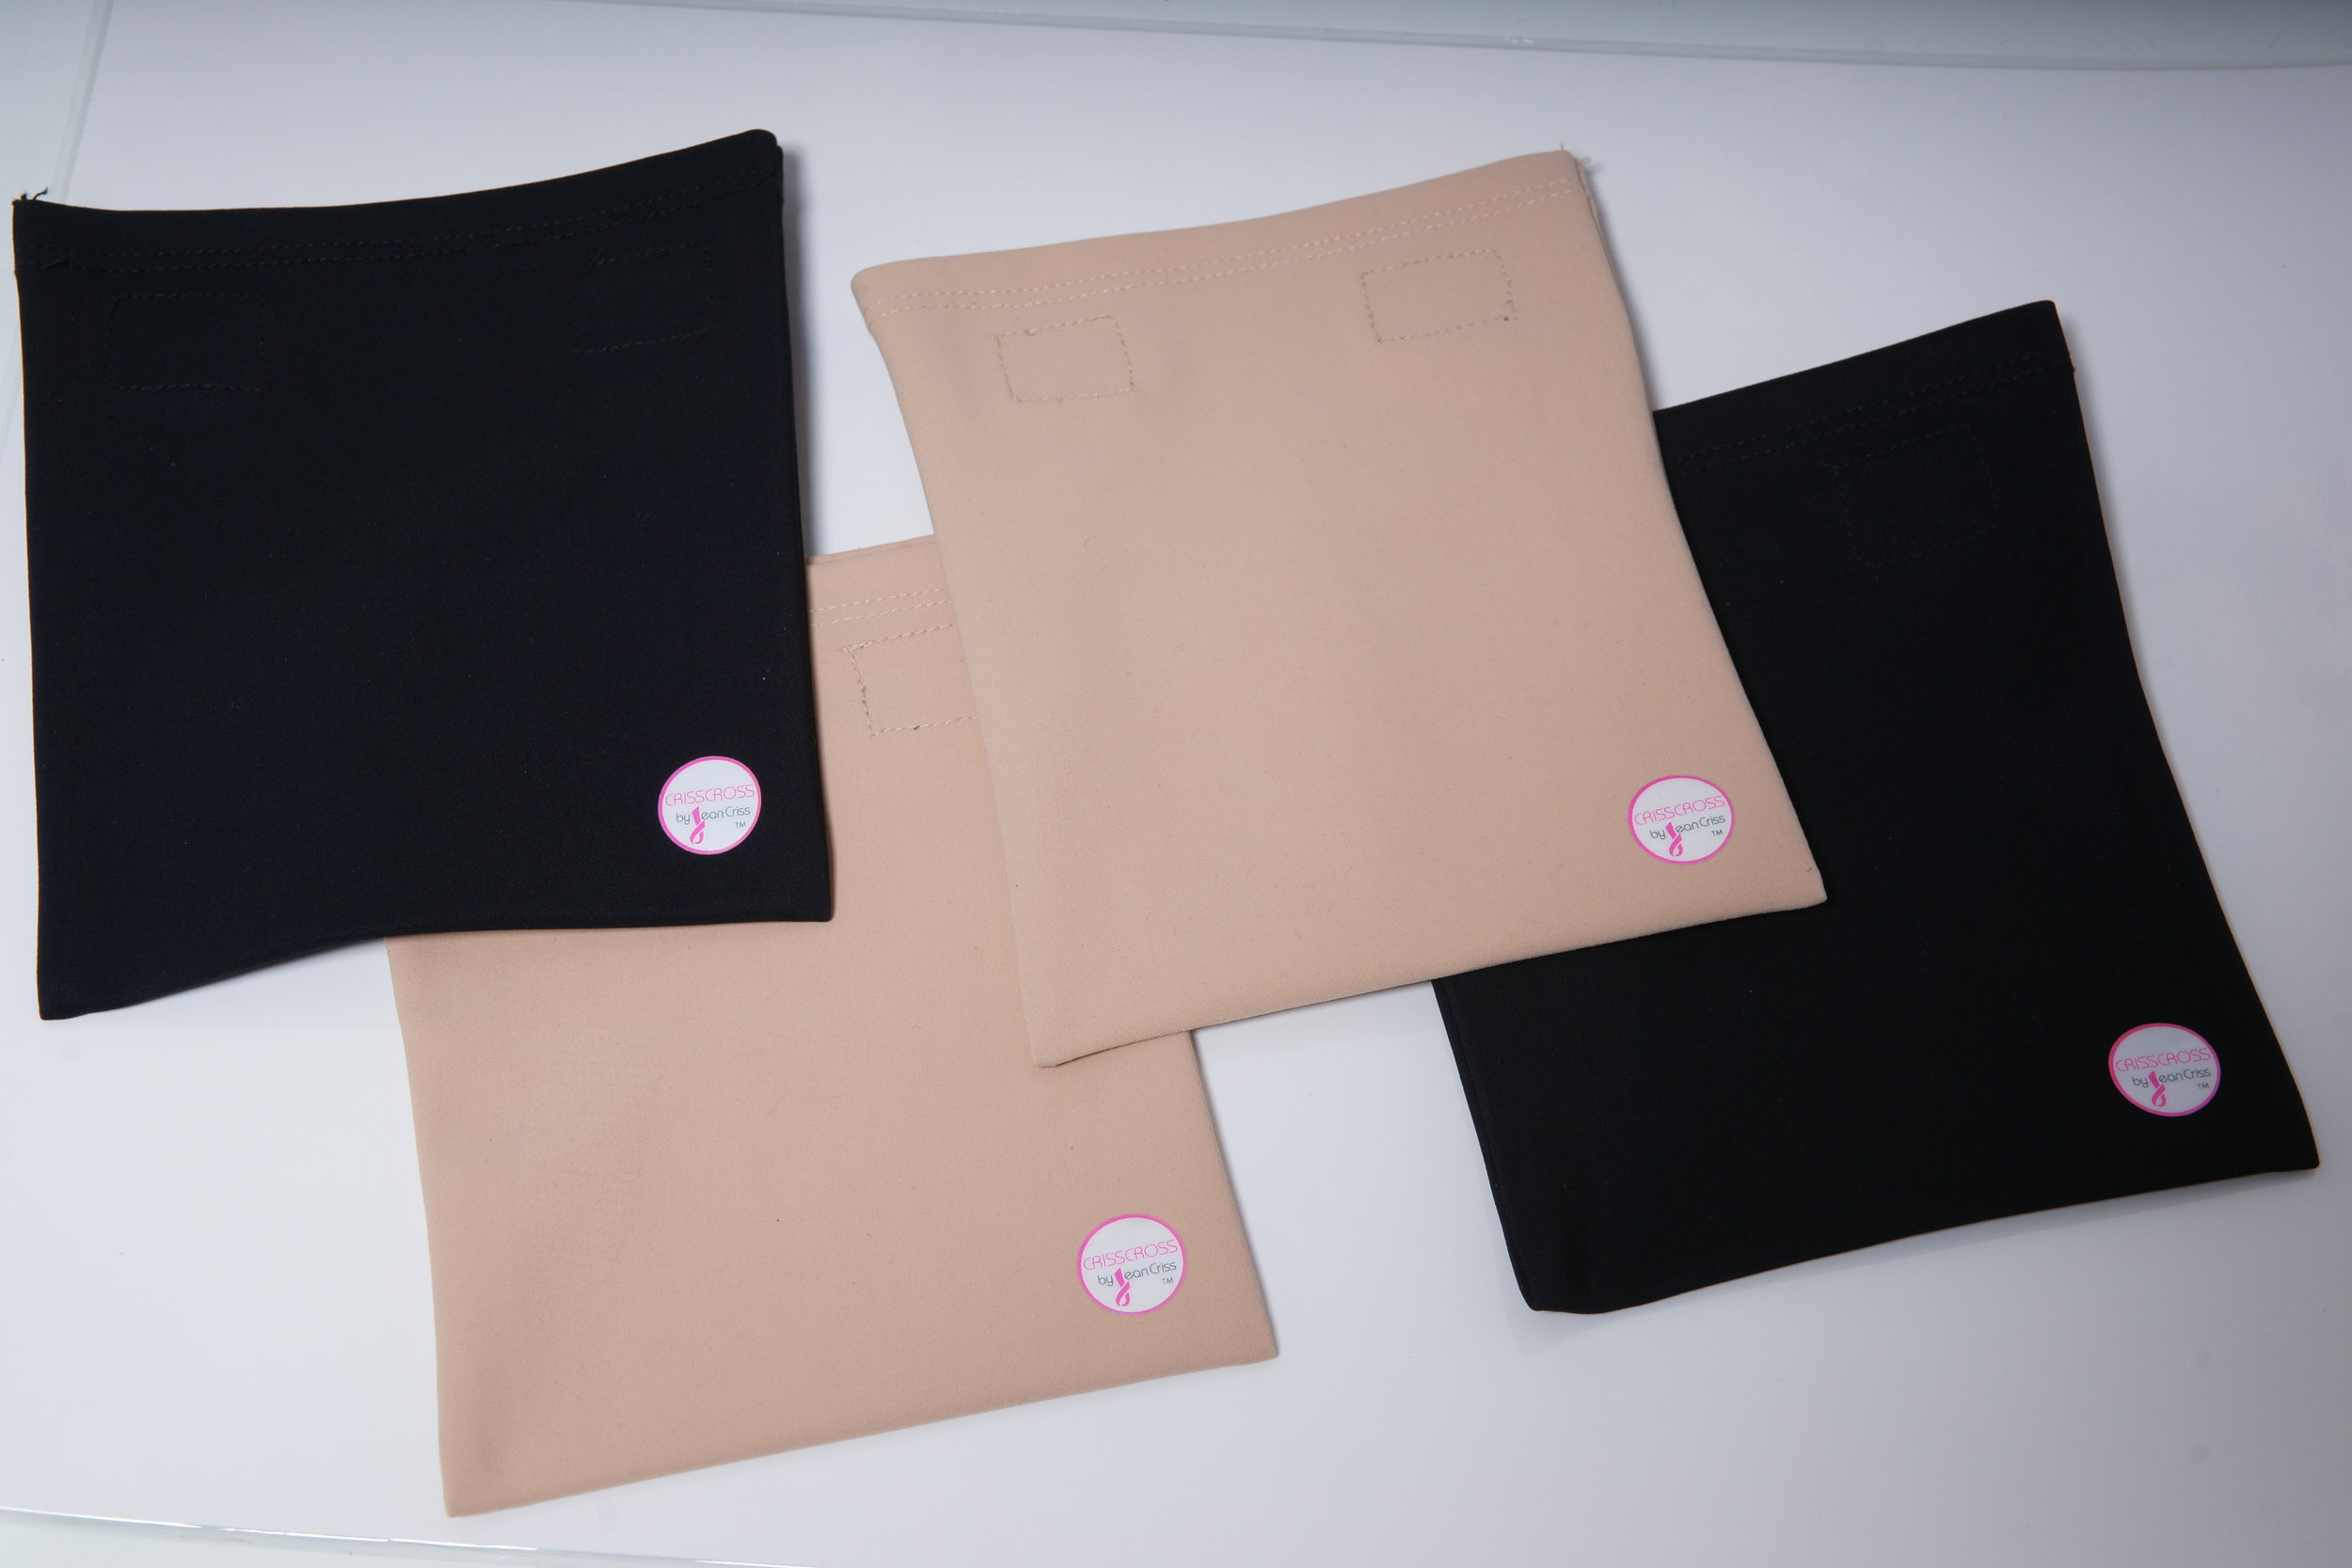 And don't forget to purchase a CRISSCROSS pouch or two for your #fab leggings or women's bra or men's vest ensemble.